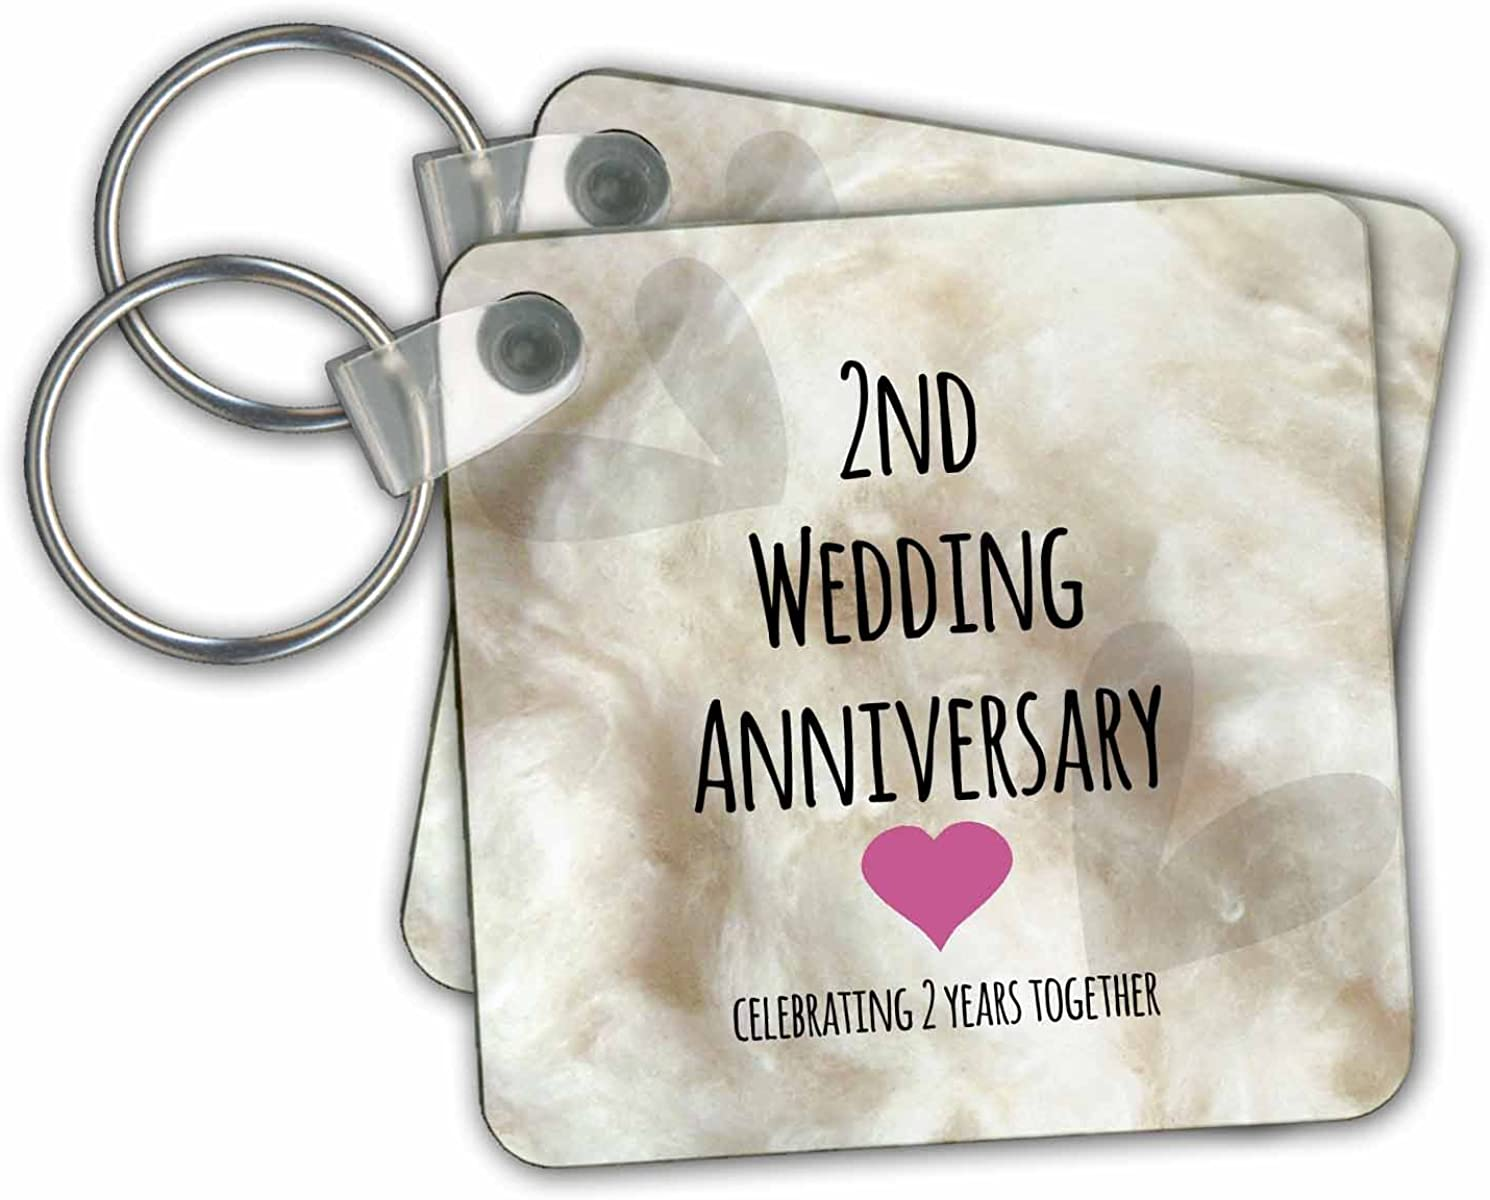 Amazon Com 3drose 2nd Wedding Anniversary Gift Cotton Key Chains 2 25 X 2 25 Set Of 2 Kc 154429 1 Office Products